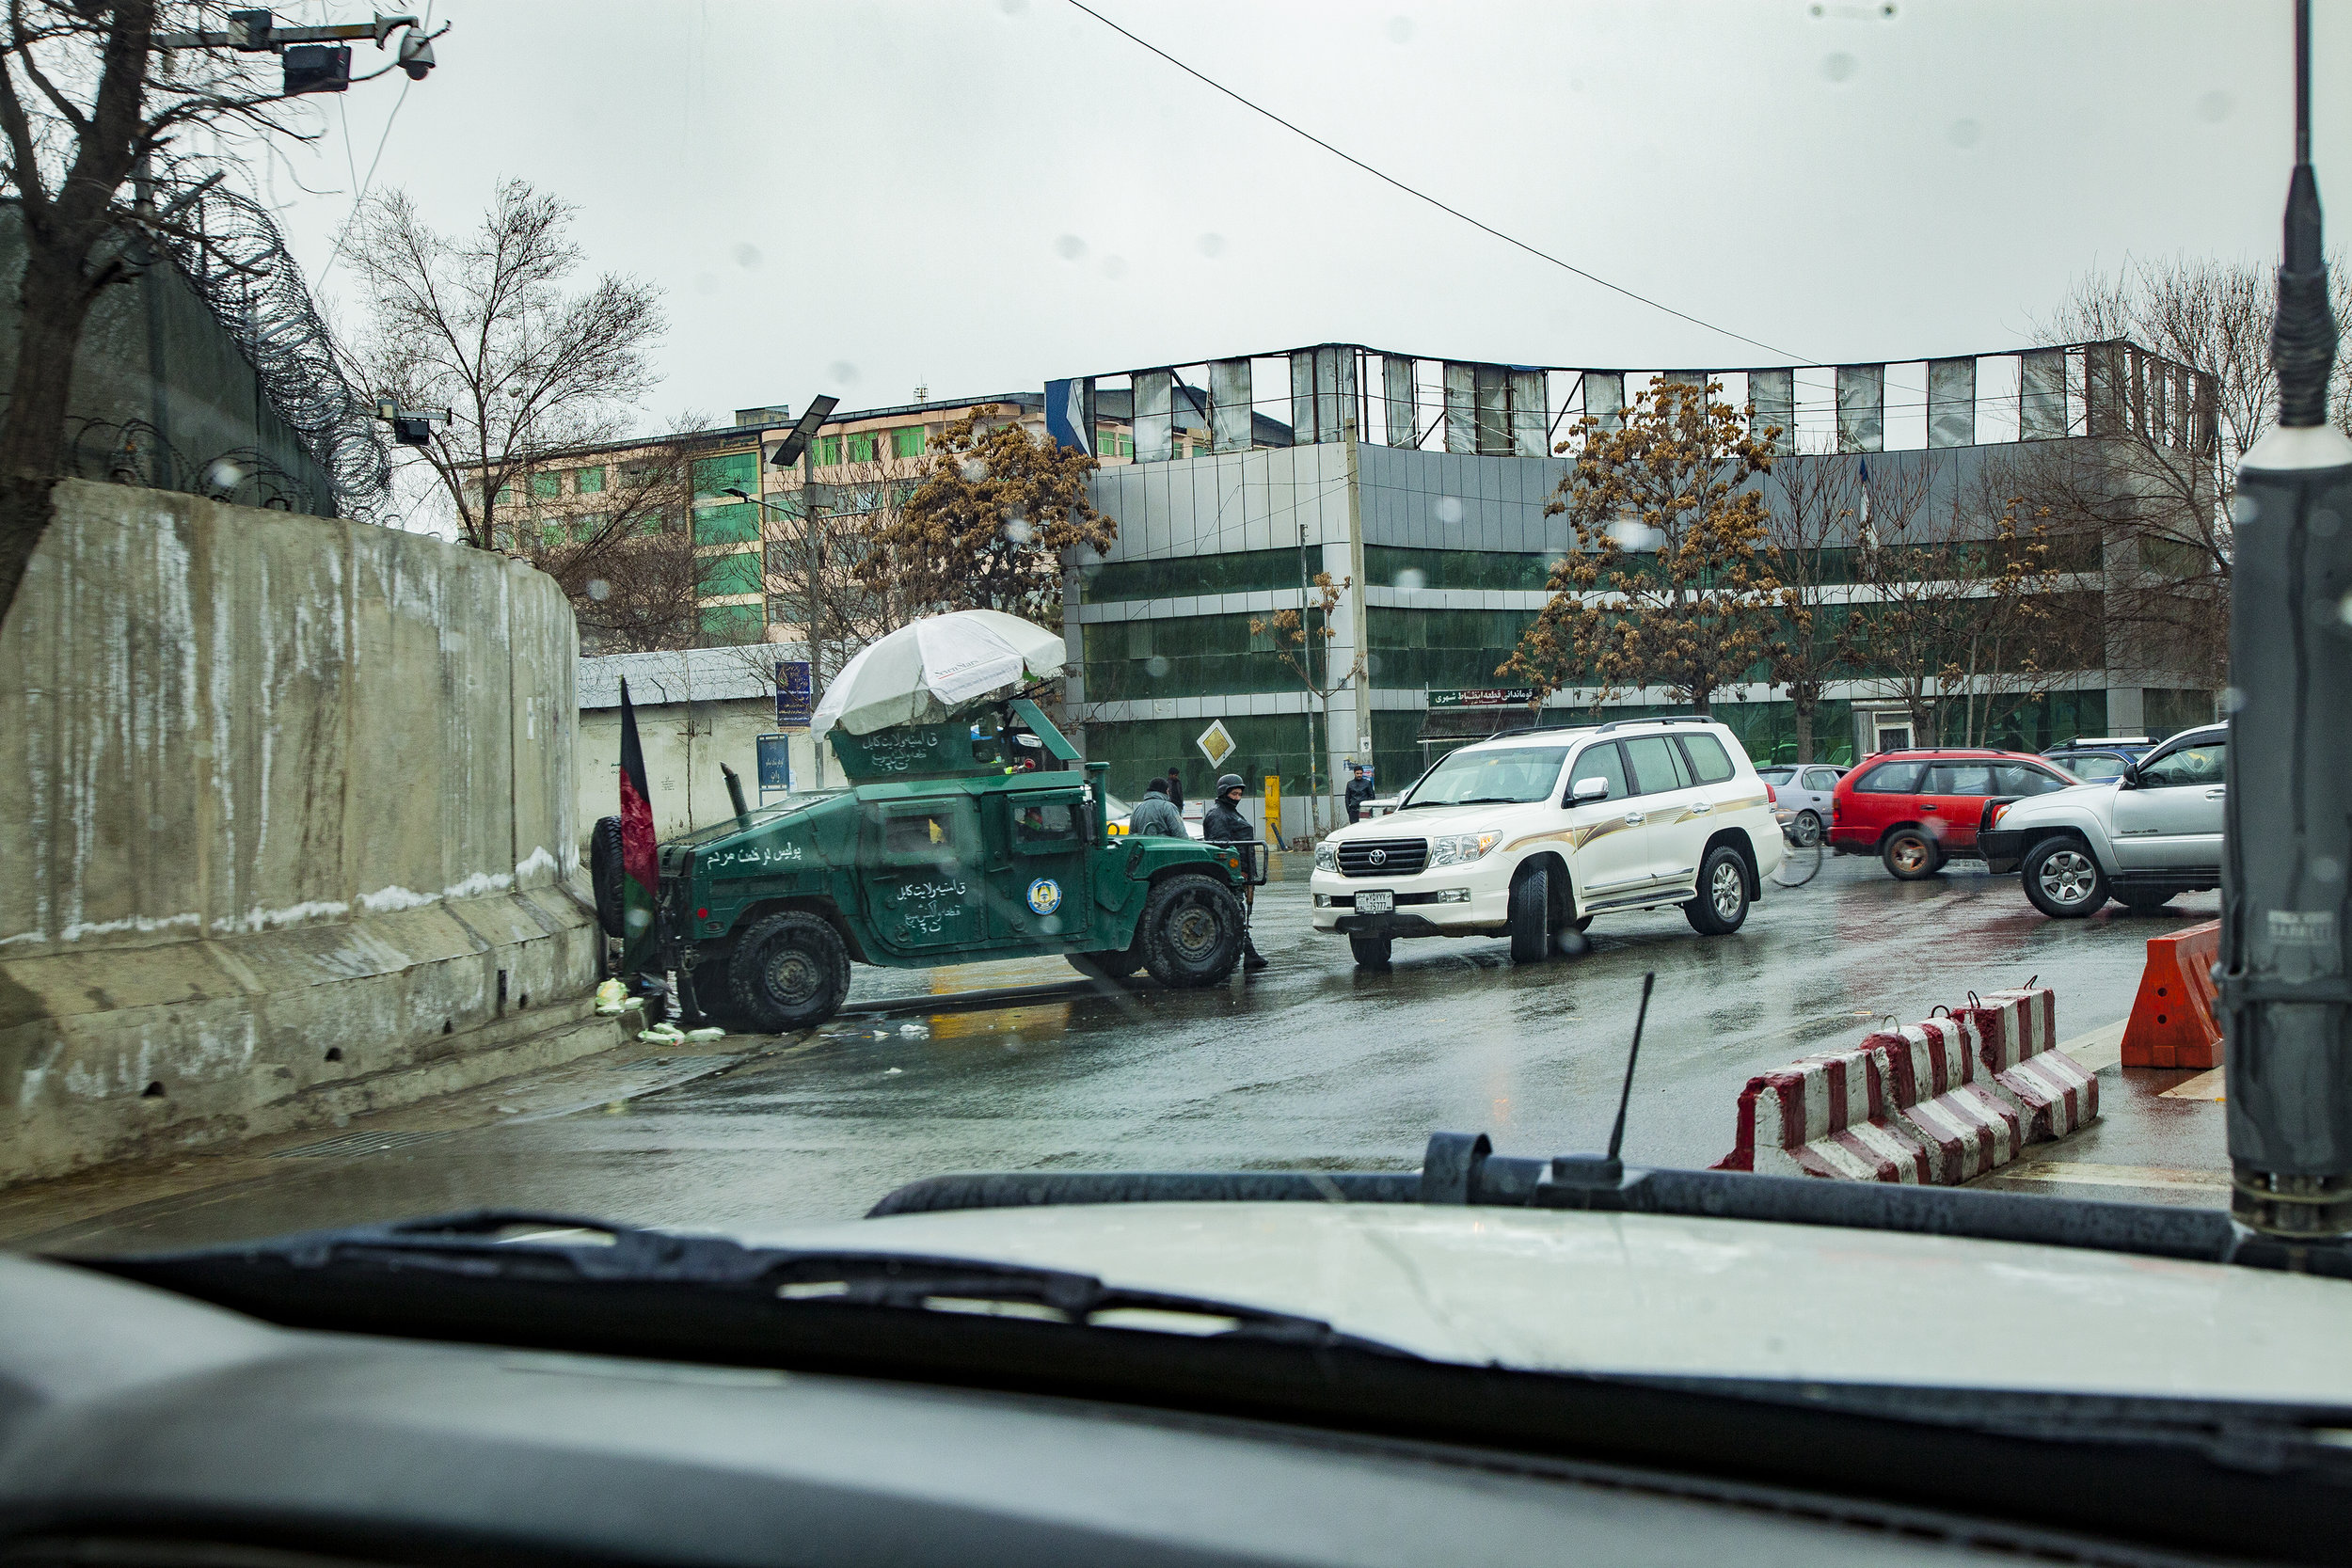 A typical sight in Kabul: armoured vehicles; blast walls and Army checkpoints.